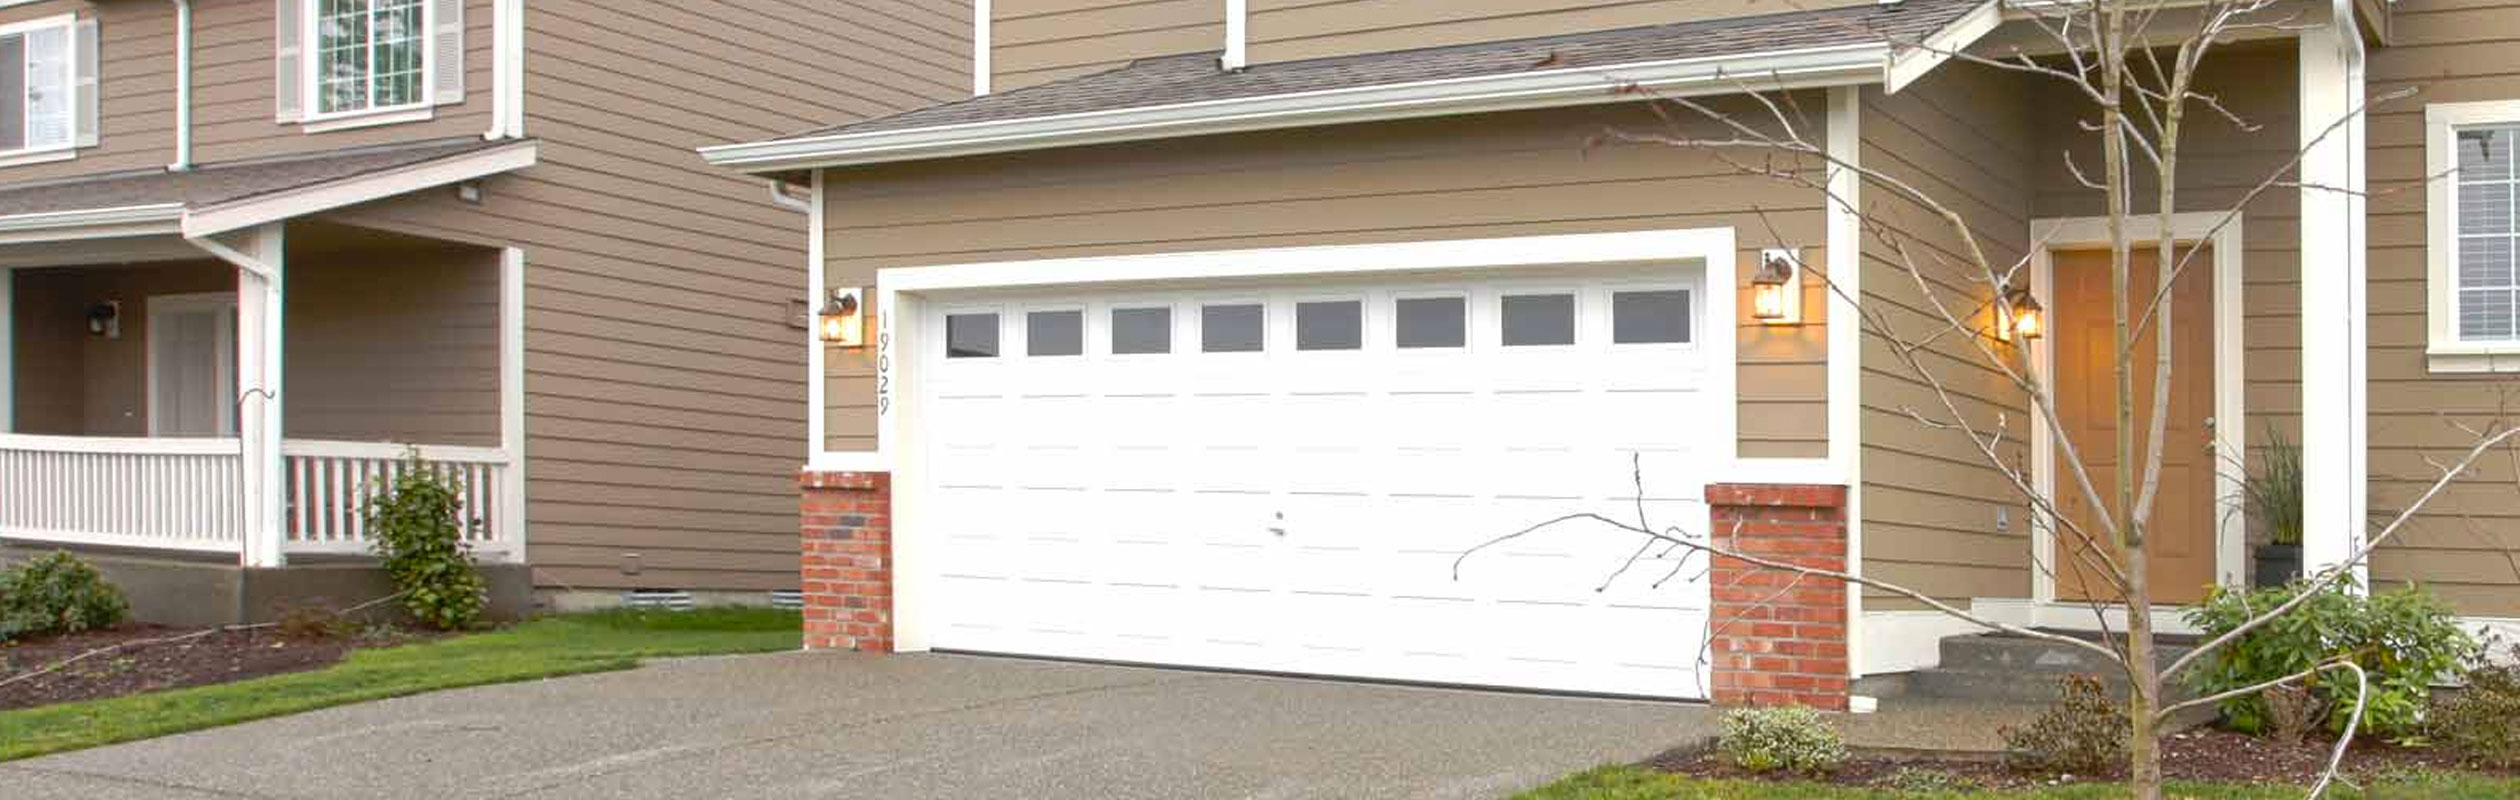 slider Garaga 0 & GARAGA garage door | Auroral Doors and Windows